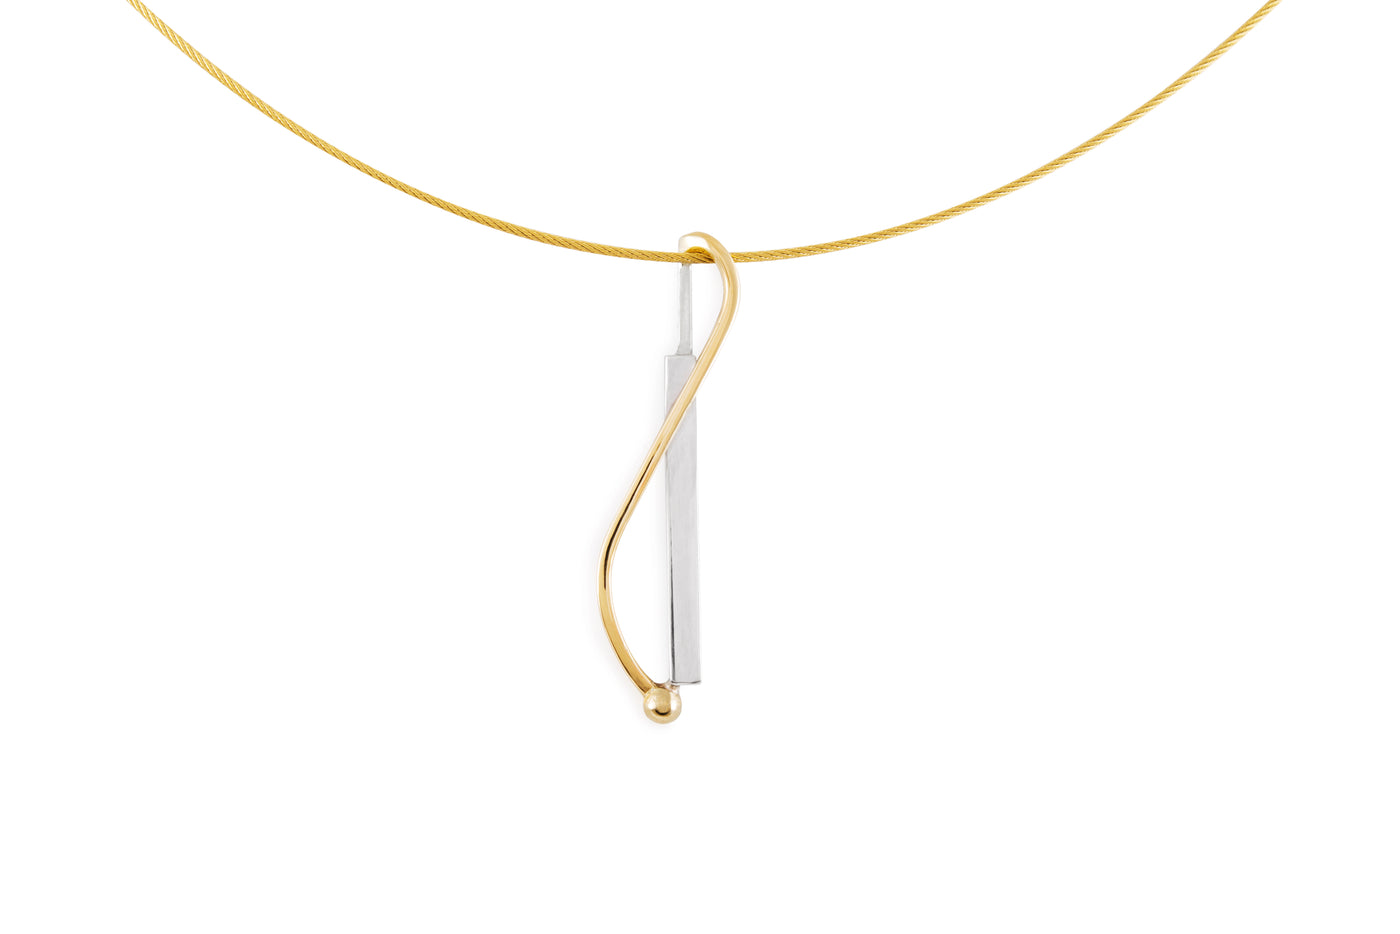 "Pendentif vertical petit collection ""Un point c'est tout"" - Maud Herbage Jewellery Design"